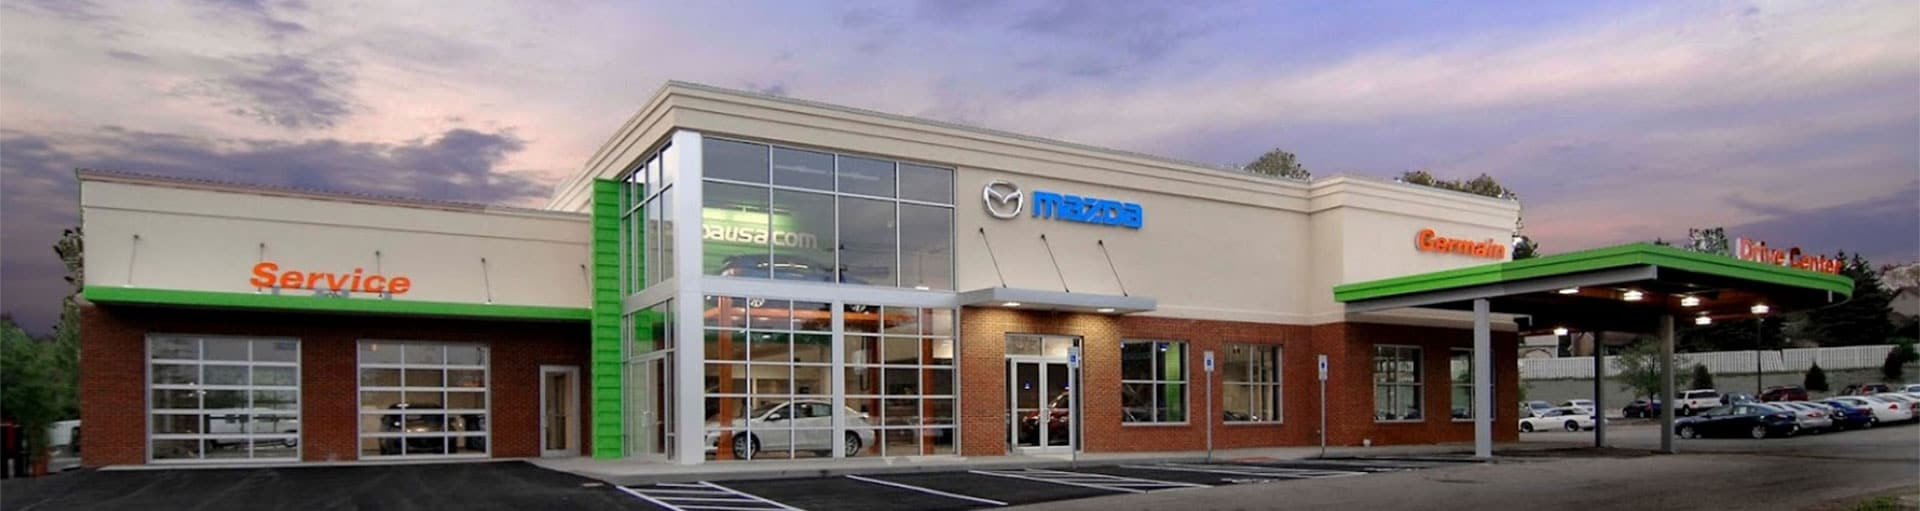 Welcome To Germain Mazda Service Department Germain